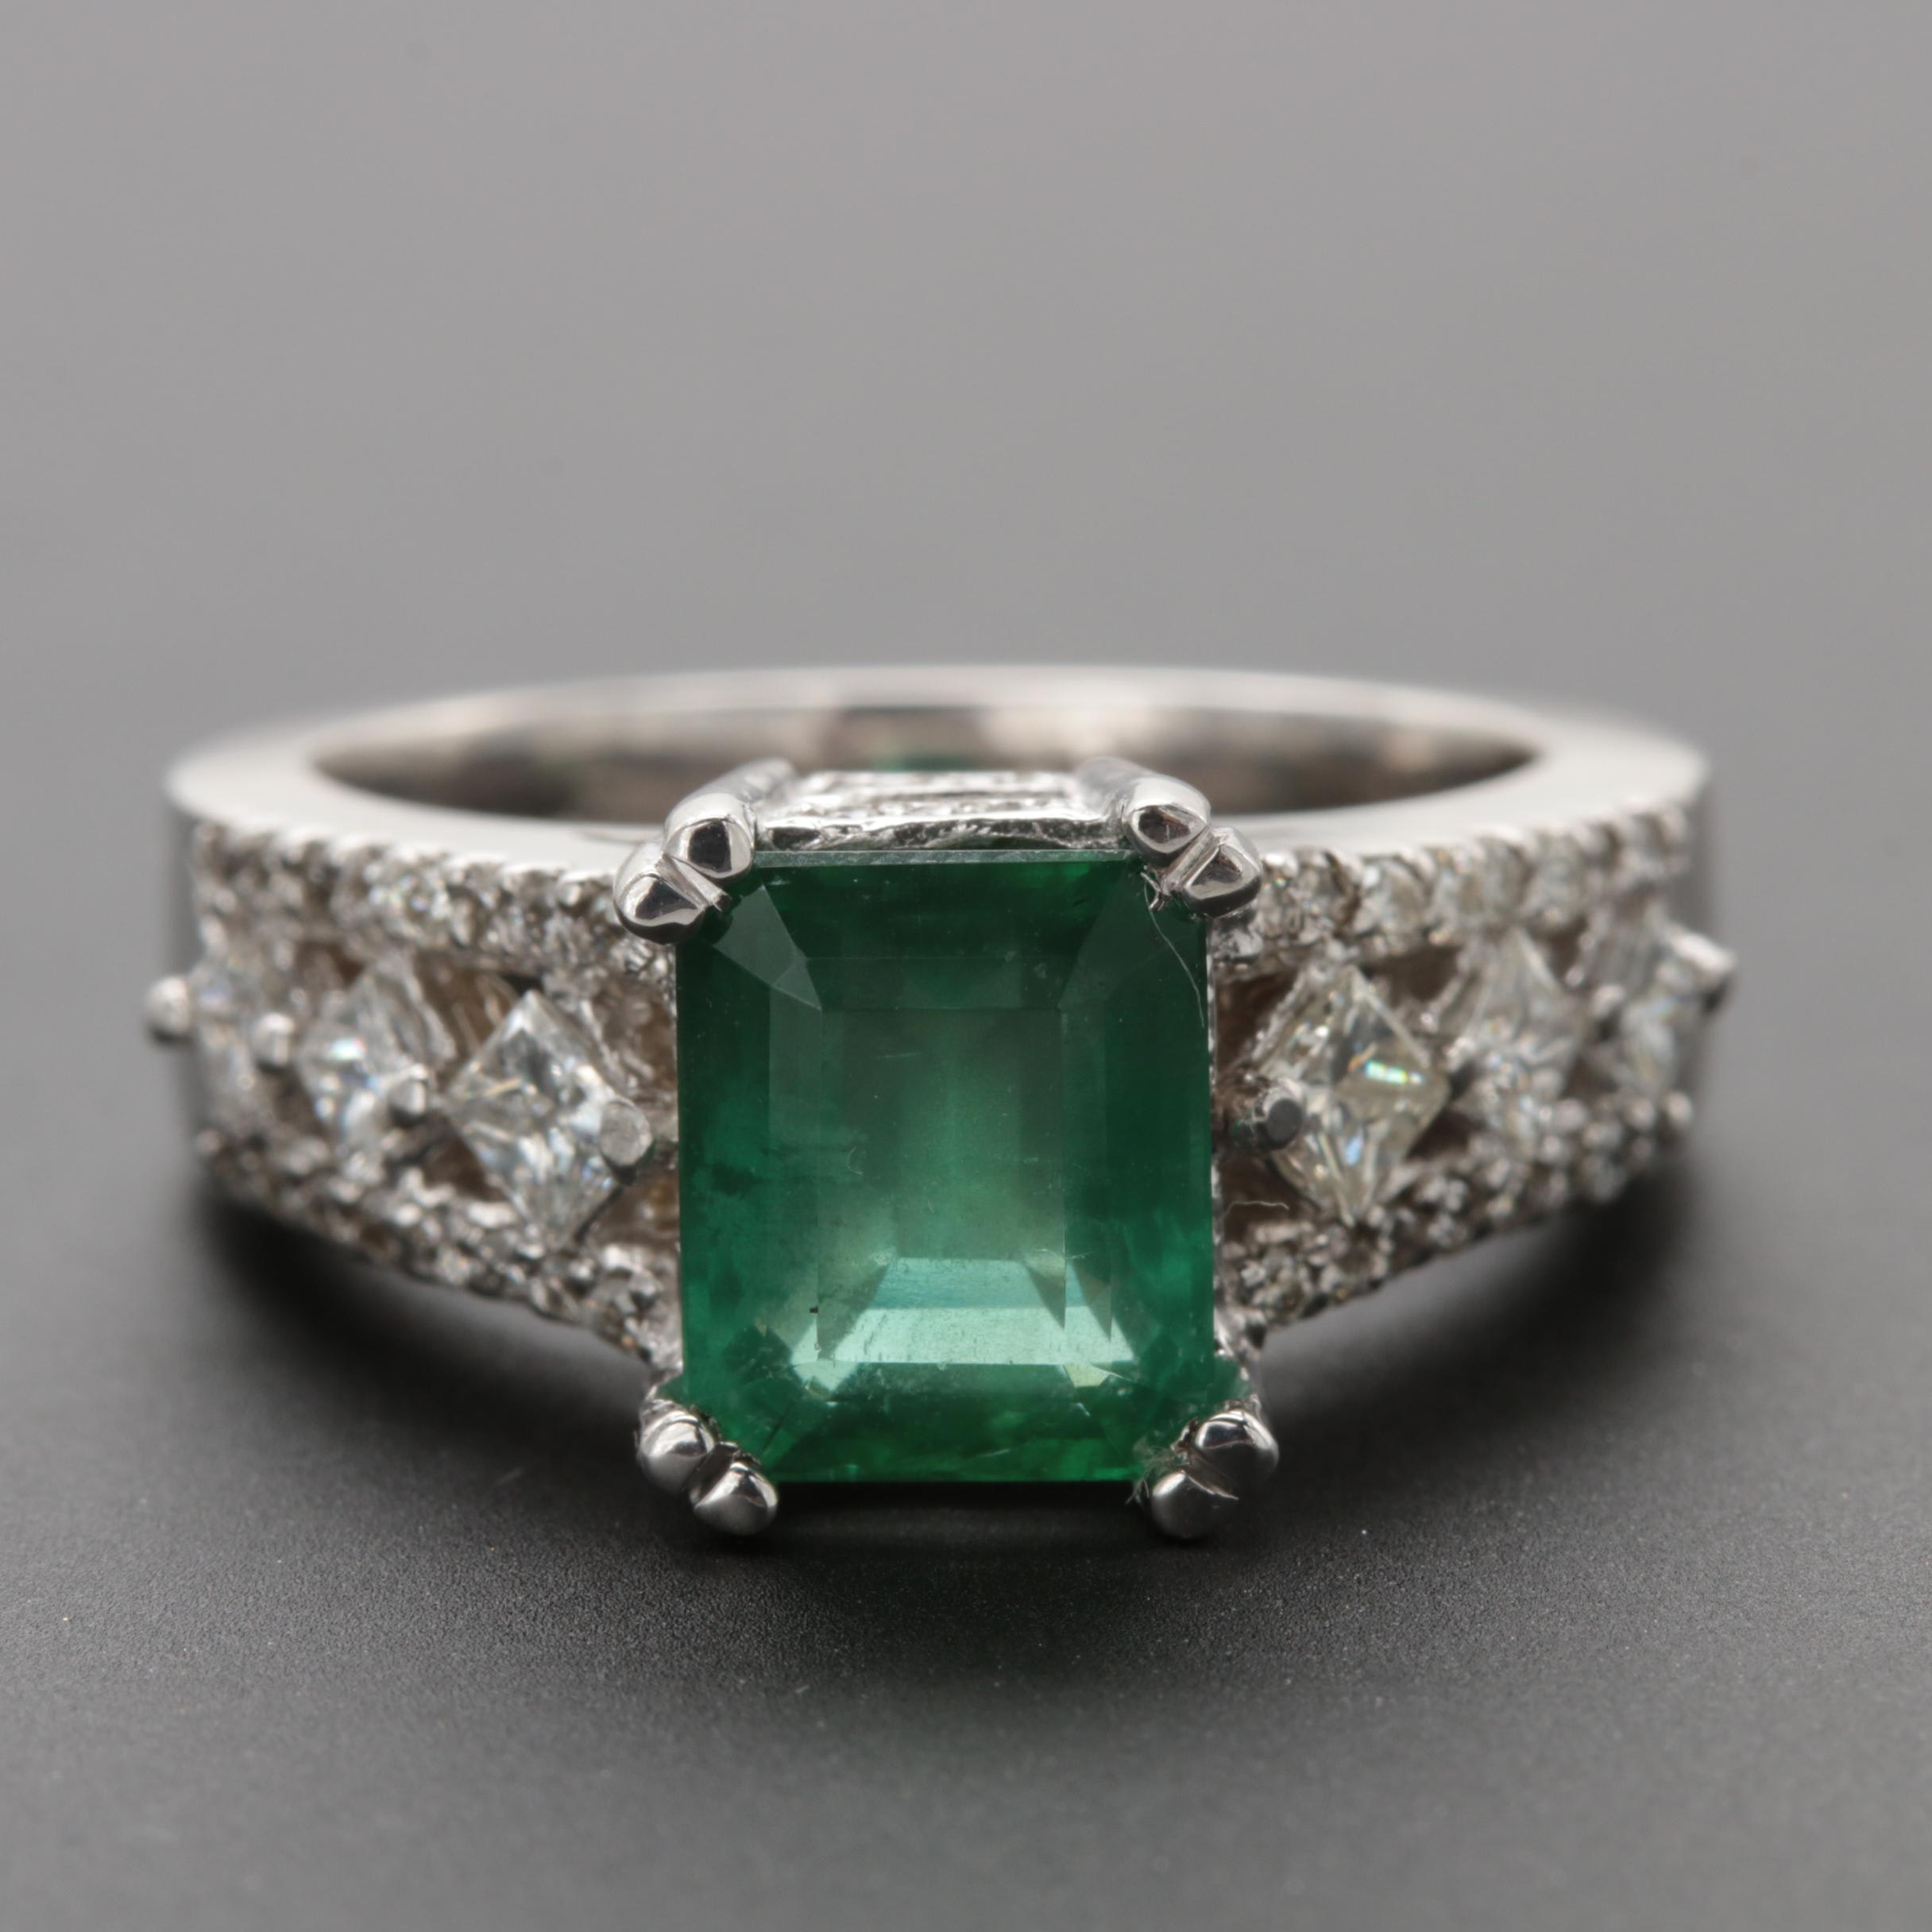 14K White Gold 1.91 CT Emerald and Diamond Ring